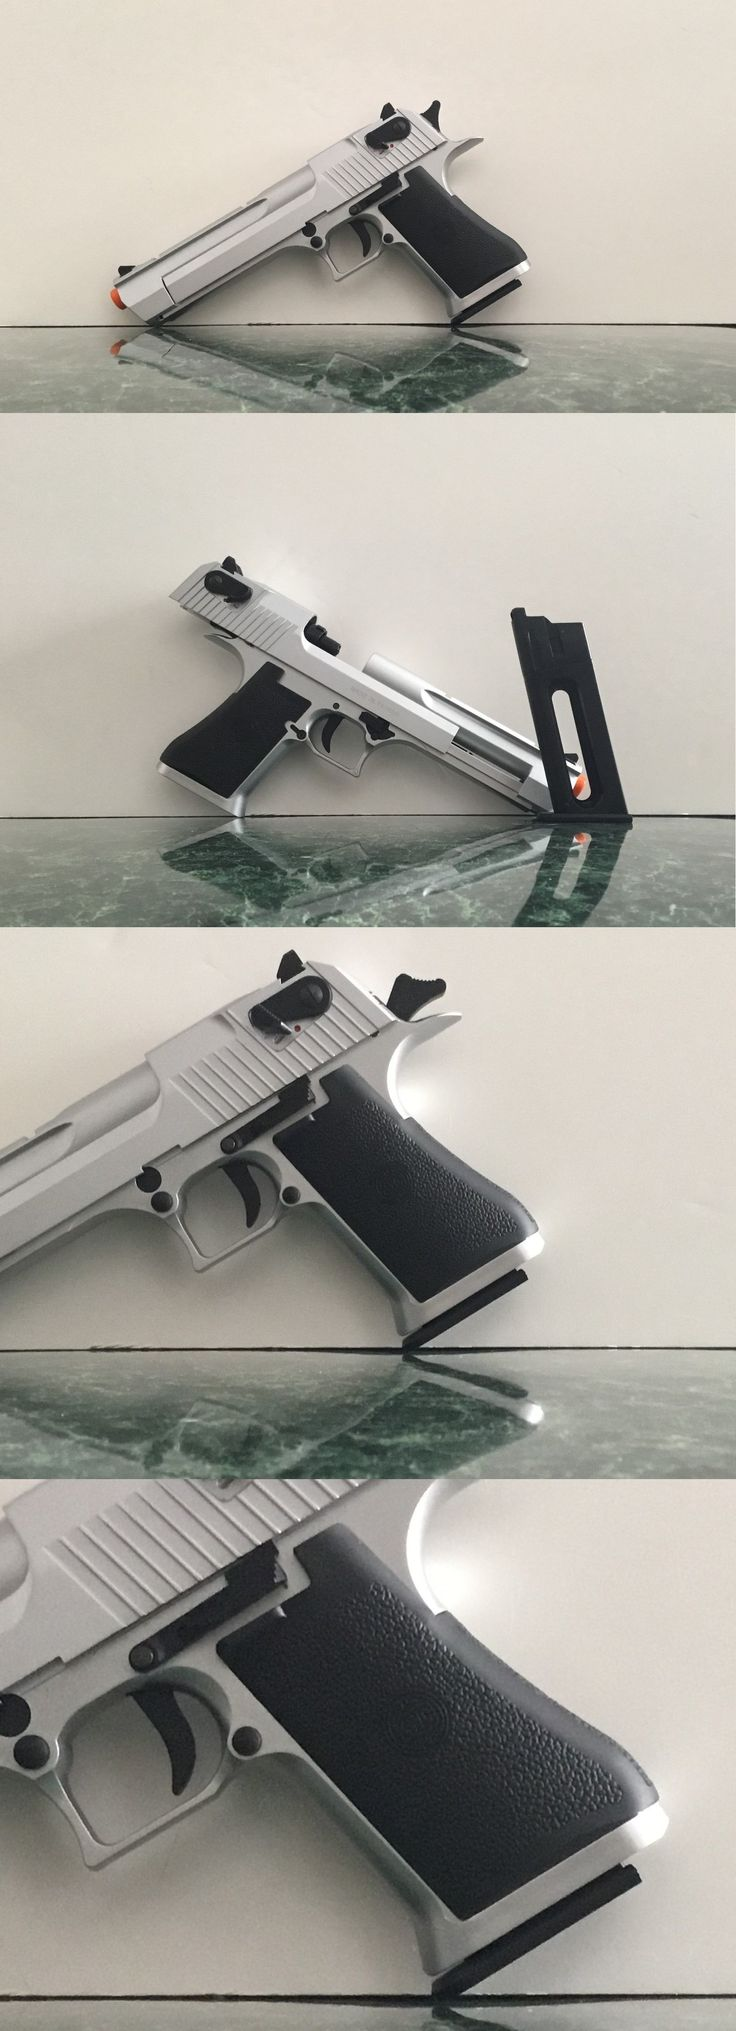 Other Gas Airsoft Guns 31685: Kwc .50 Desert Eagle Style Co2 Blowback Version (Metal Slide) - Silver BUY IT NOW ONLY: $129.99